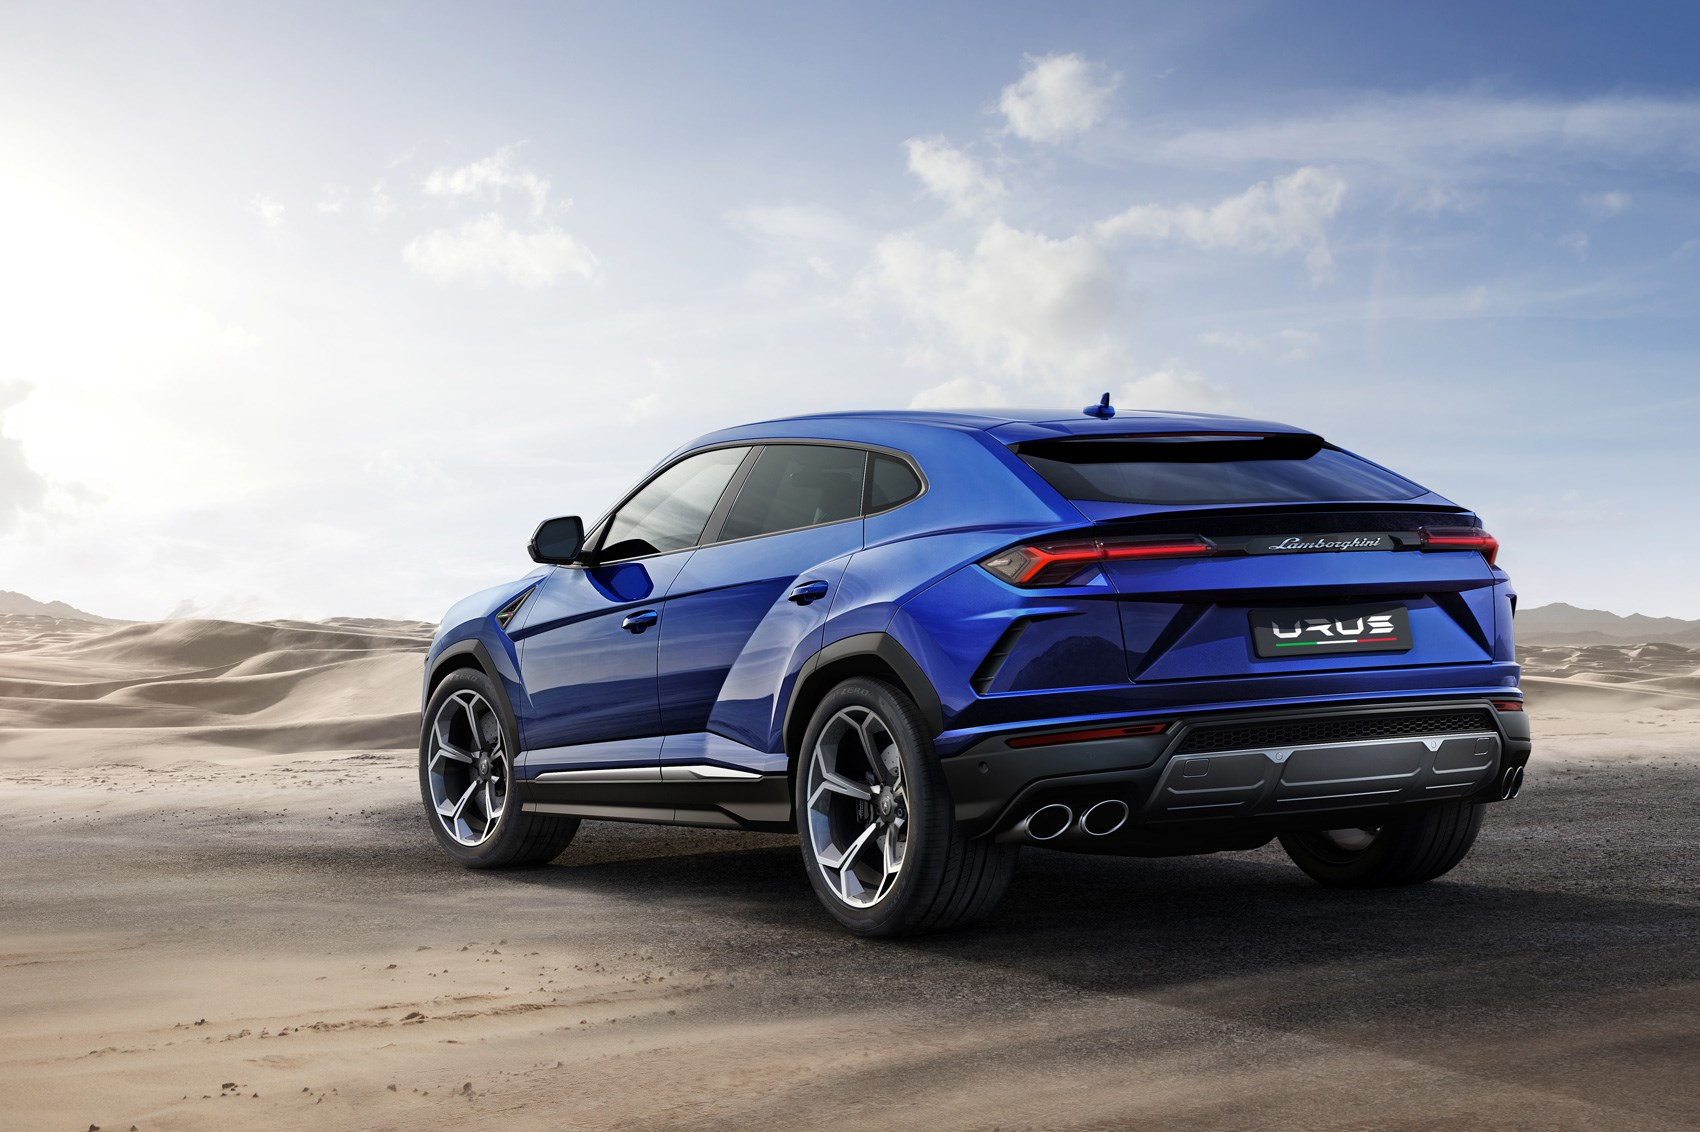 Lamborghini Urus 2018 SUV: everything you need to know  CAR Magazine